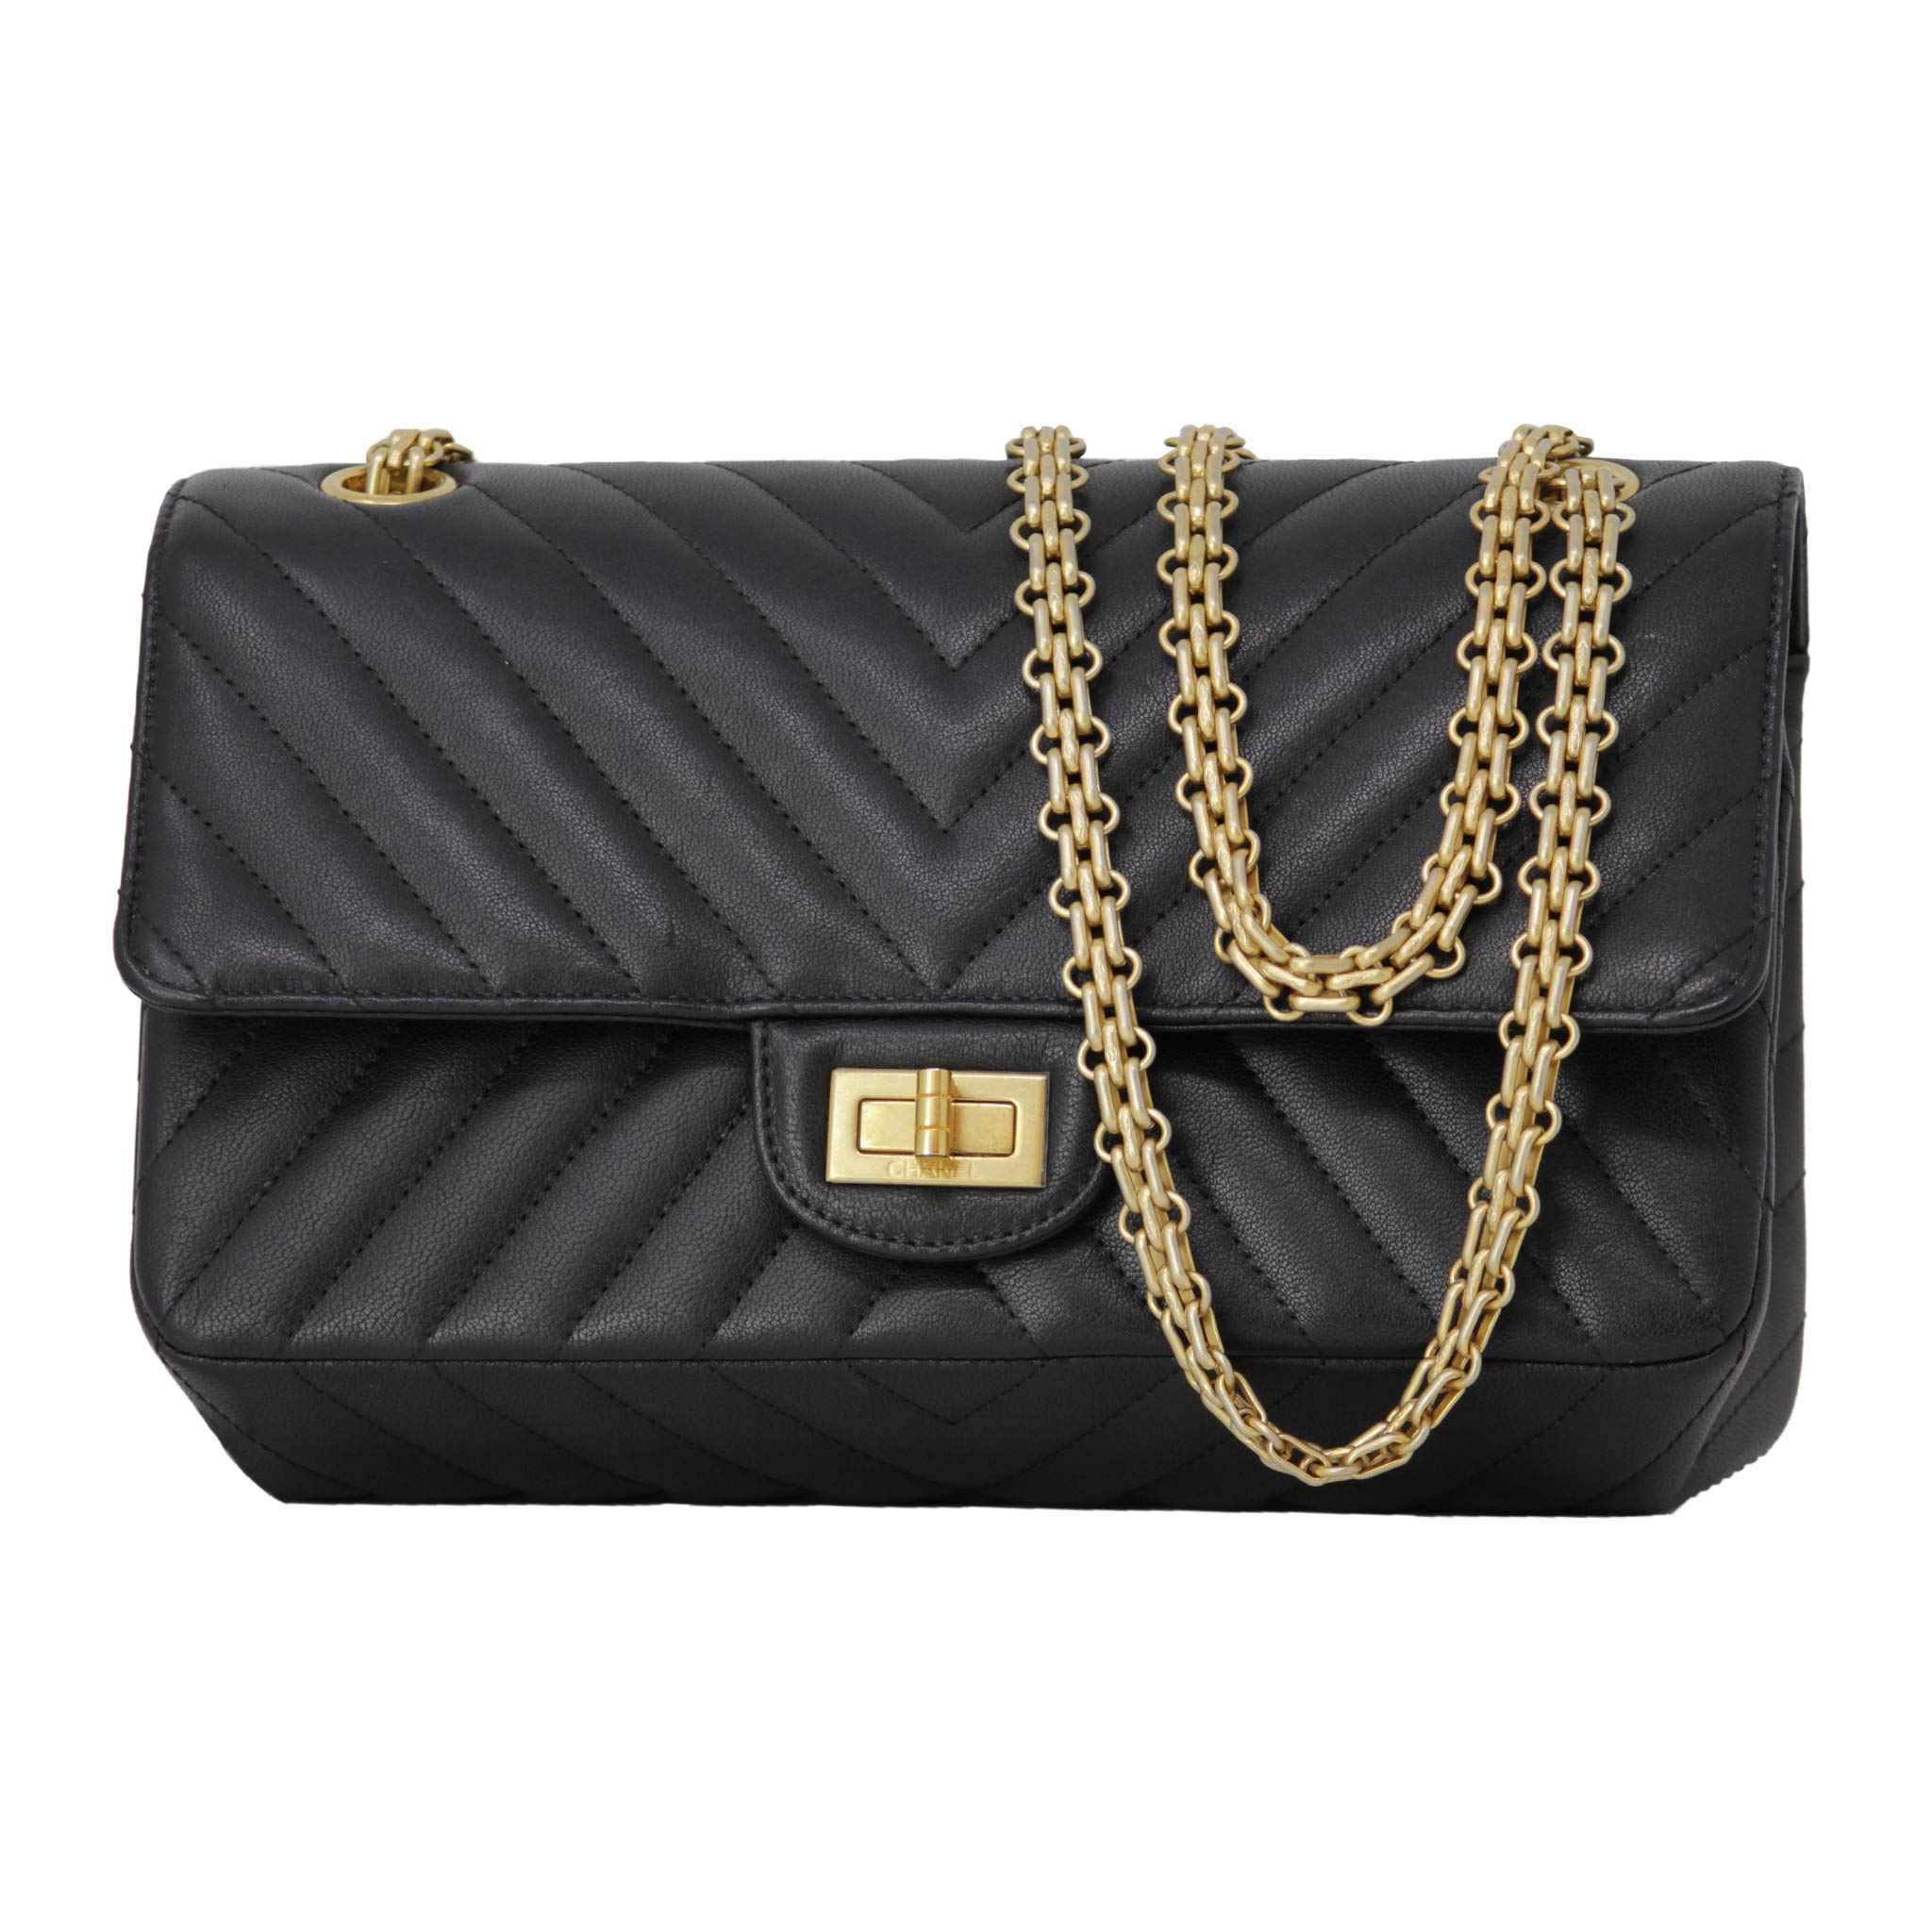 Chanel Black Handbag With Yellow Gold Hardware Flap Purse Everyday Bag